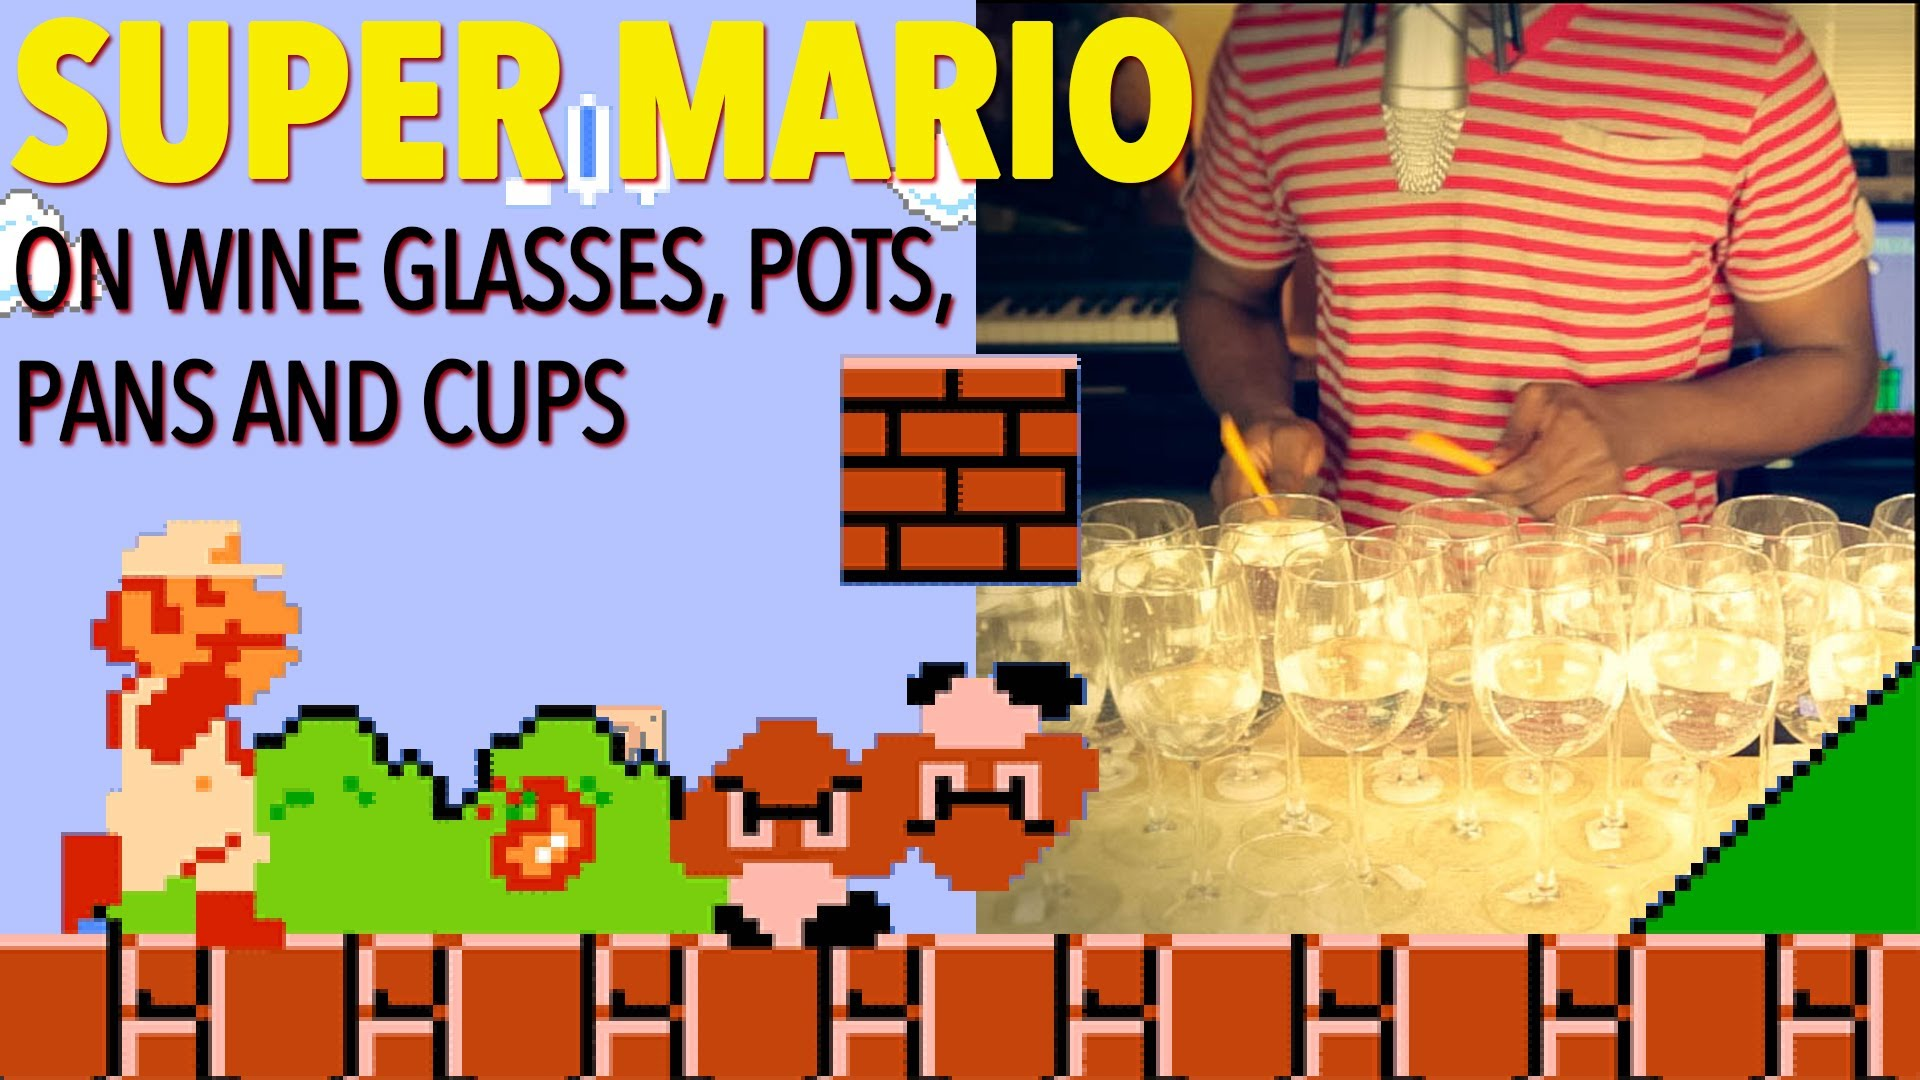 Super Mario Bros Theme Song on Wine Glasses and a Frying Pan